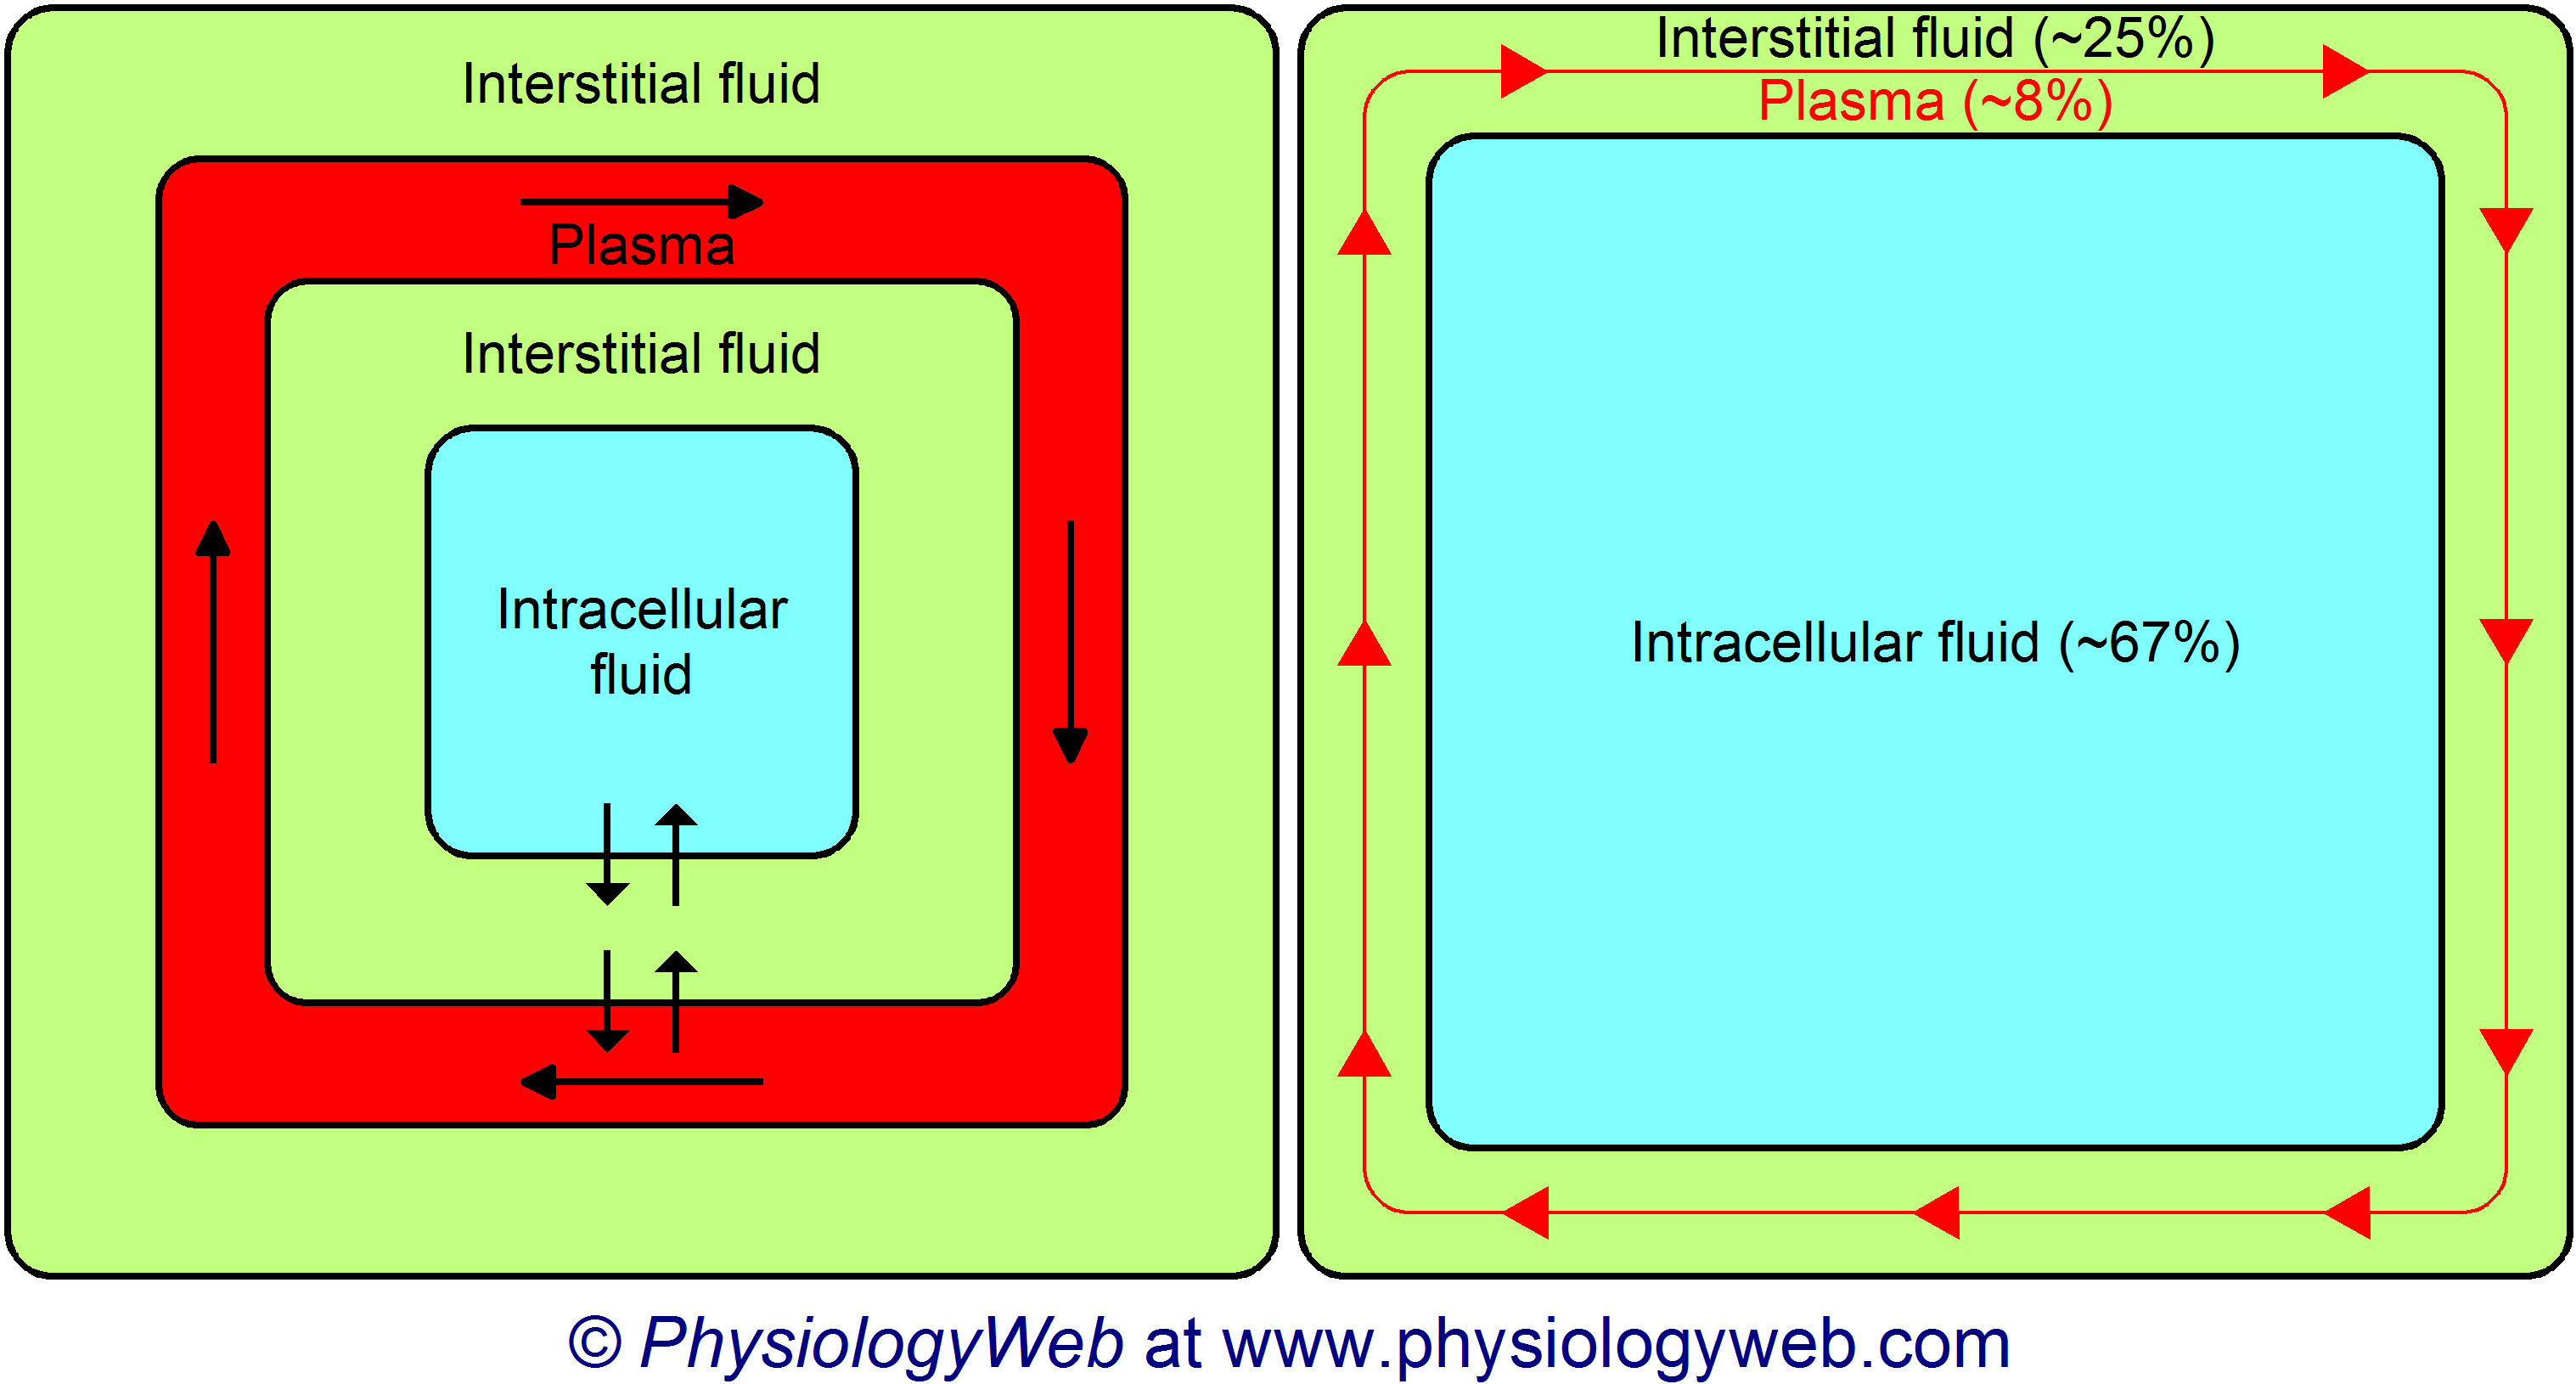 Three major body fluid compartments: Intracellular fluid, interstitial fluid, and plasma.